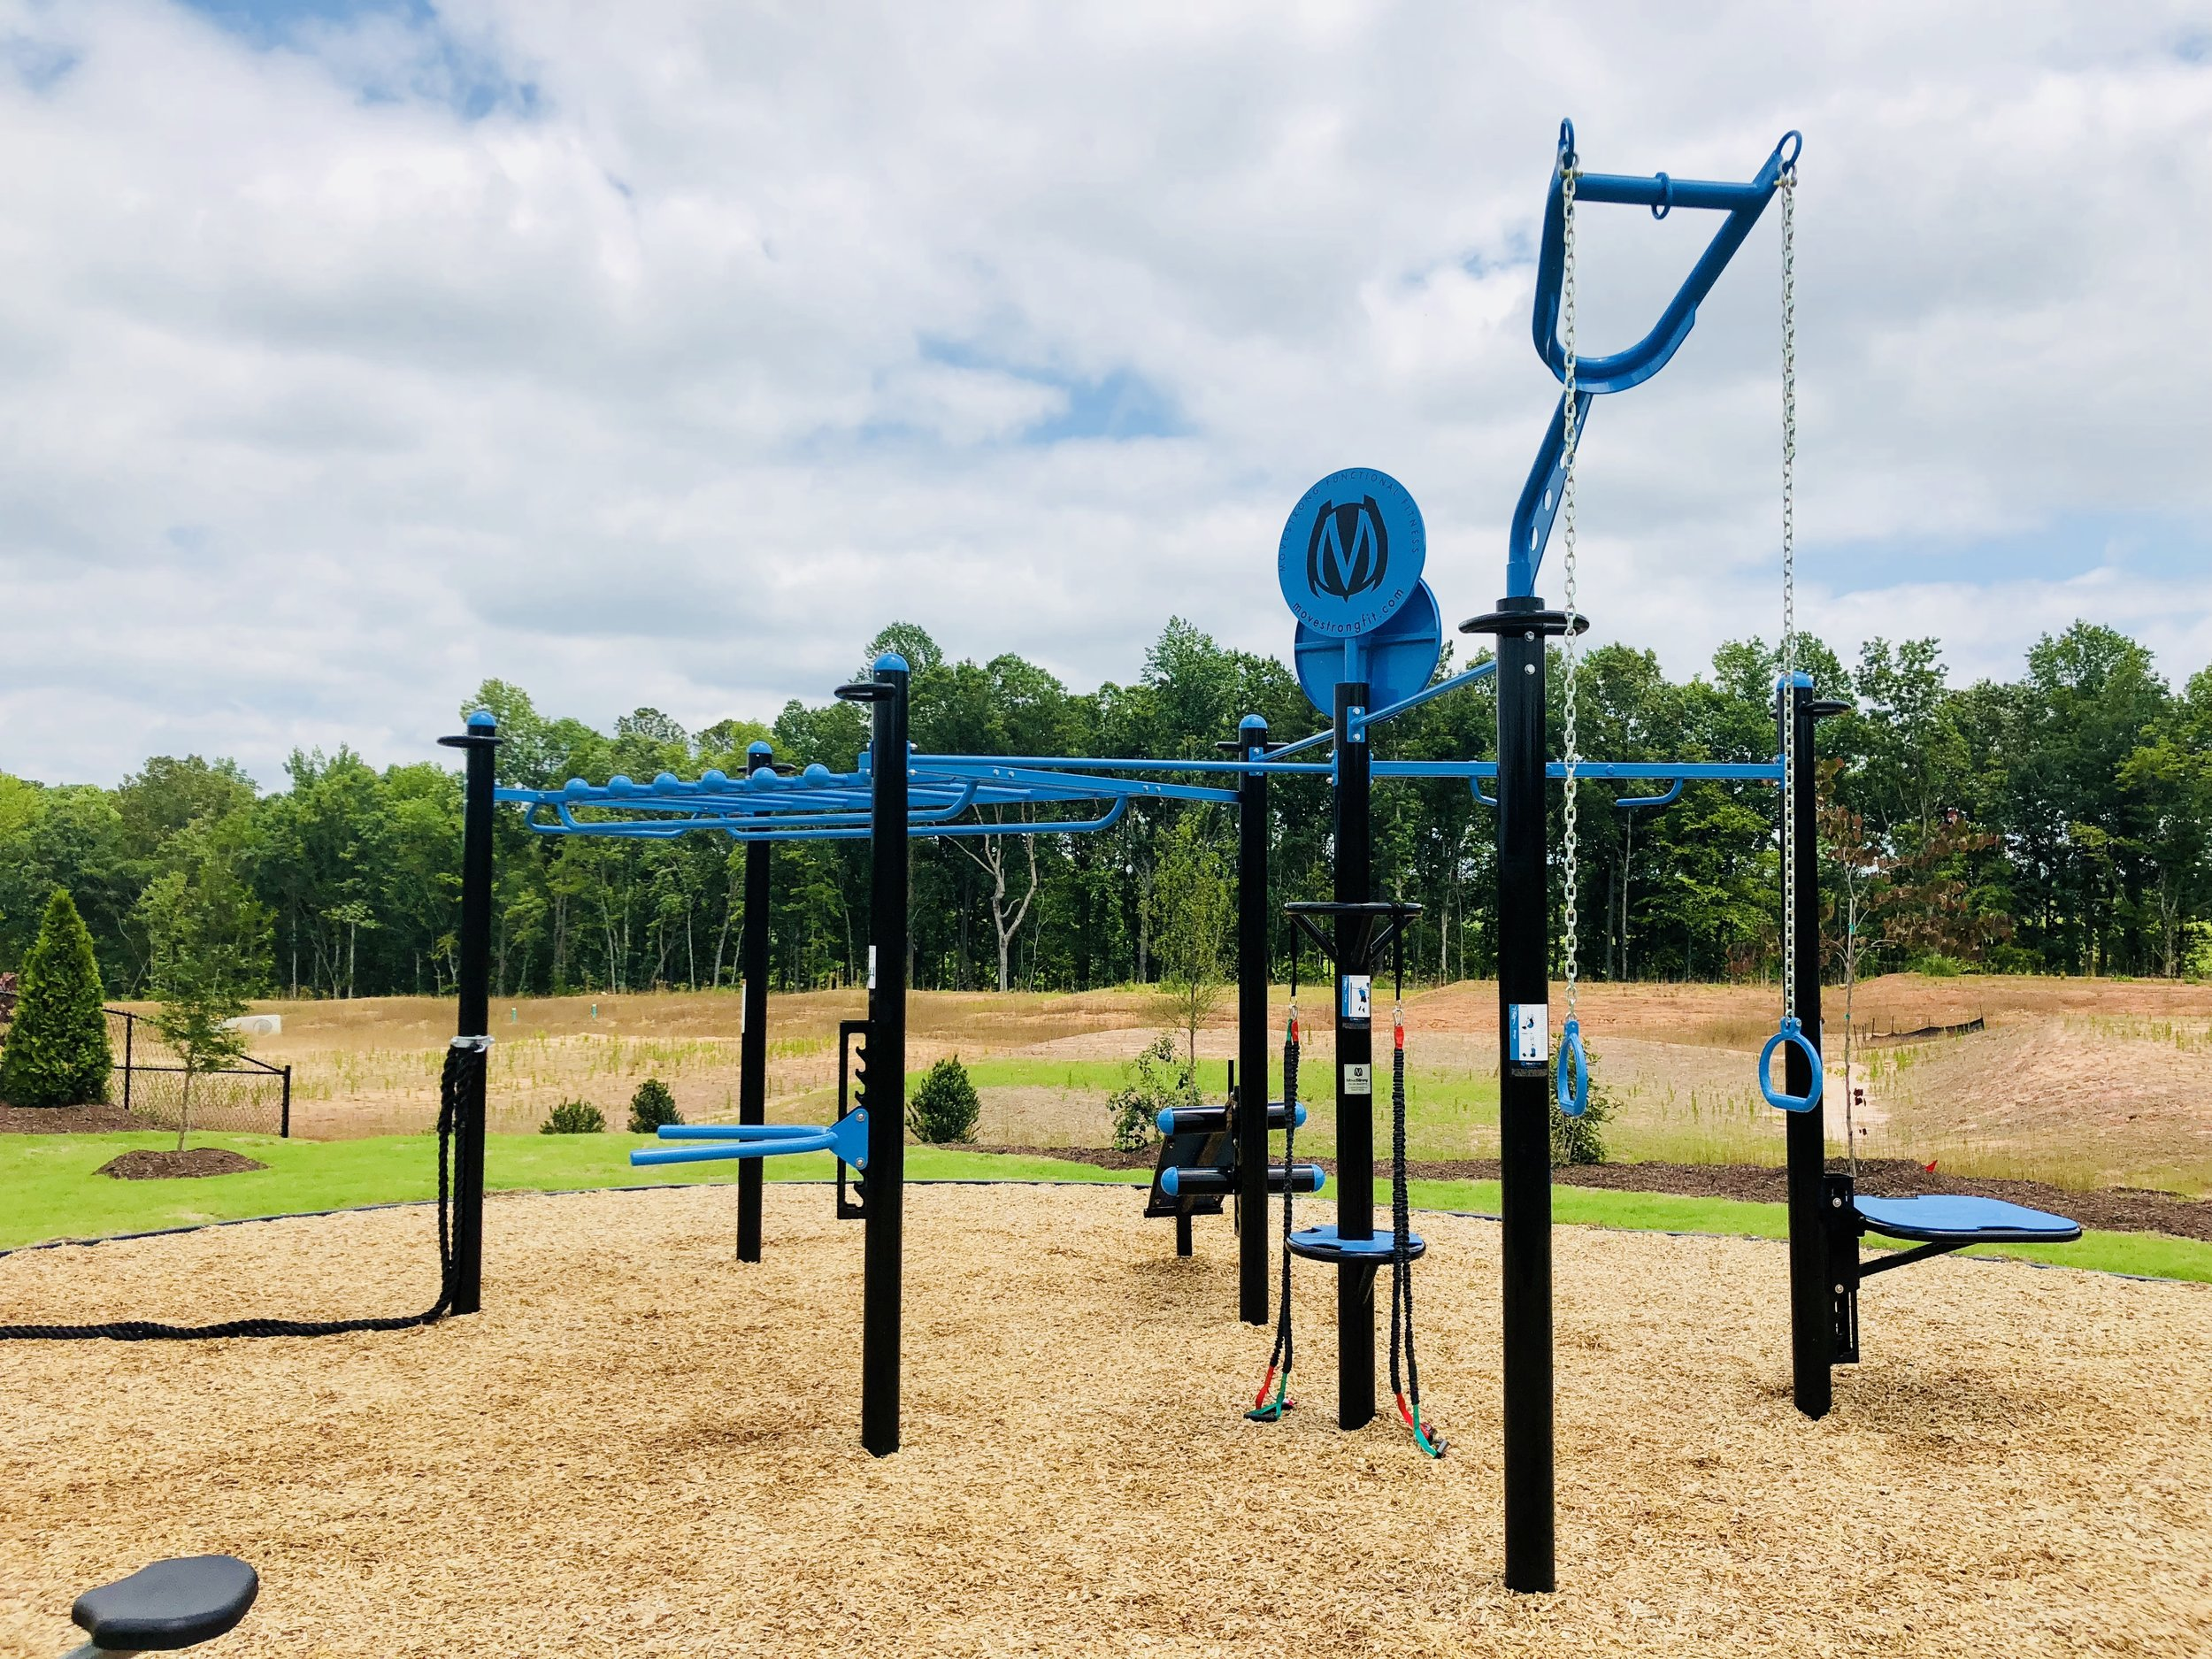 Fitness exercise for outdoor HOA amenity